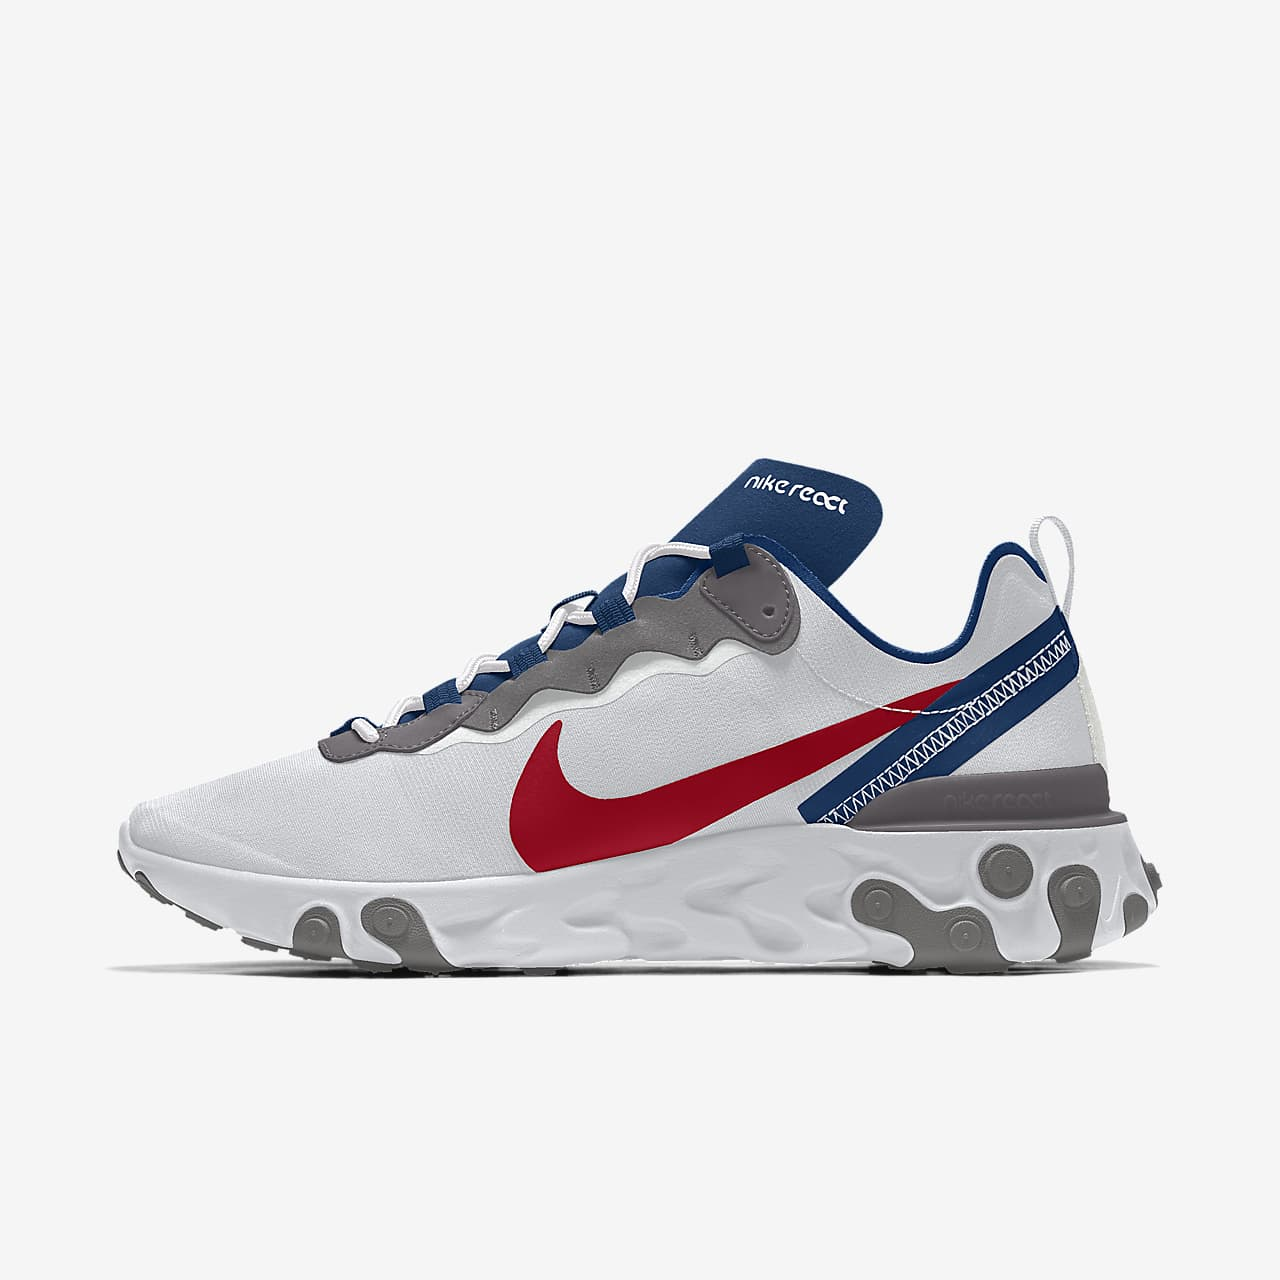 Nike React Element 55 By You personalisierbarer Herren-Freizeitschuh